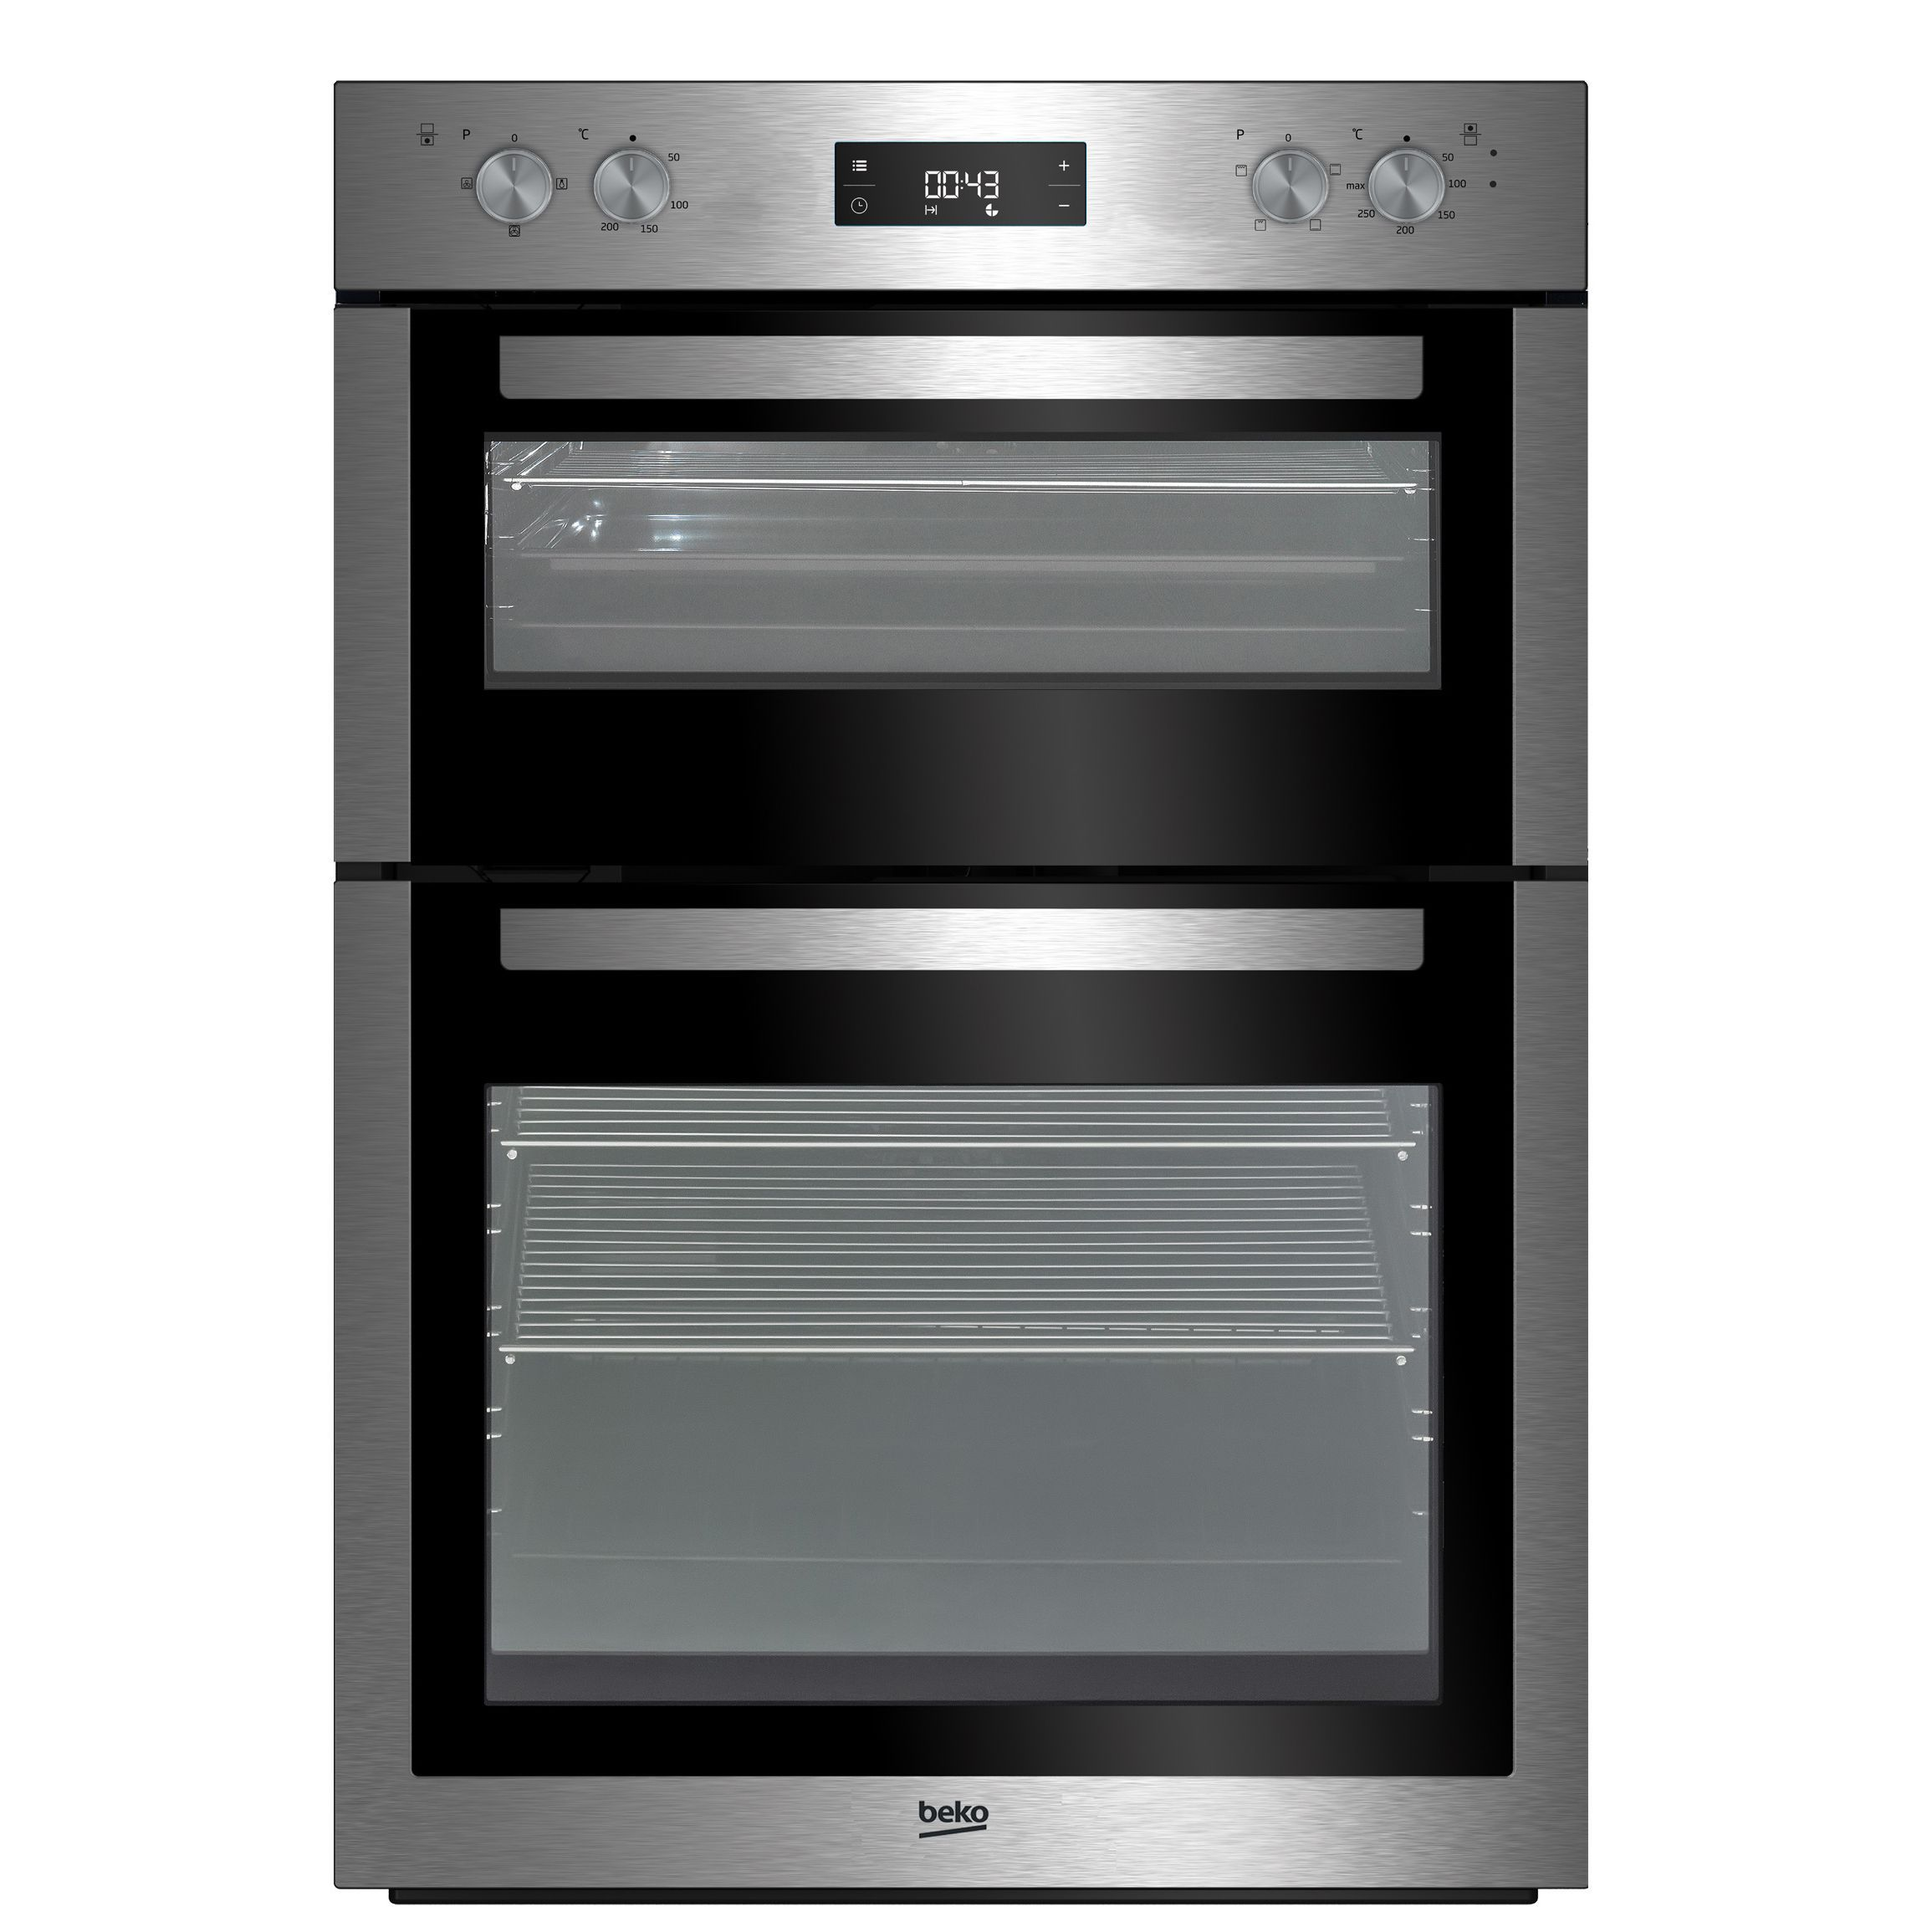 Uncategorized Beko Kitchen Appliances beko bdf26300x stainless steel electric double oven departments diy at bq